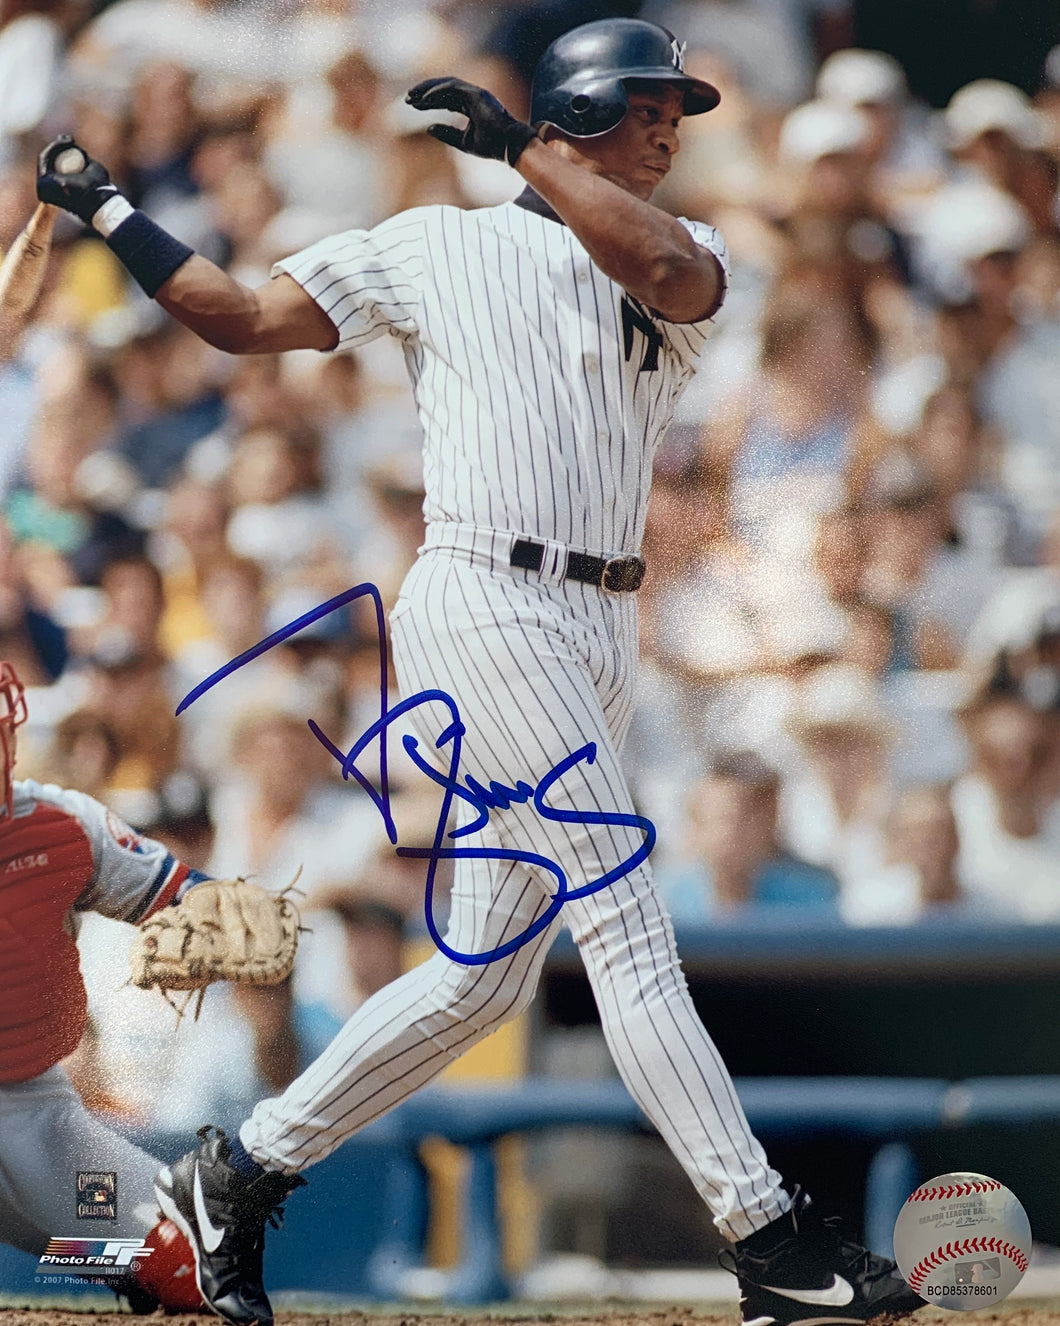 Darryl Strawberry Autographed 8